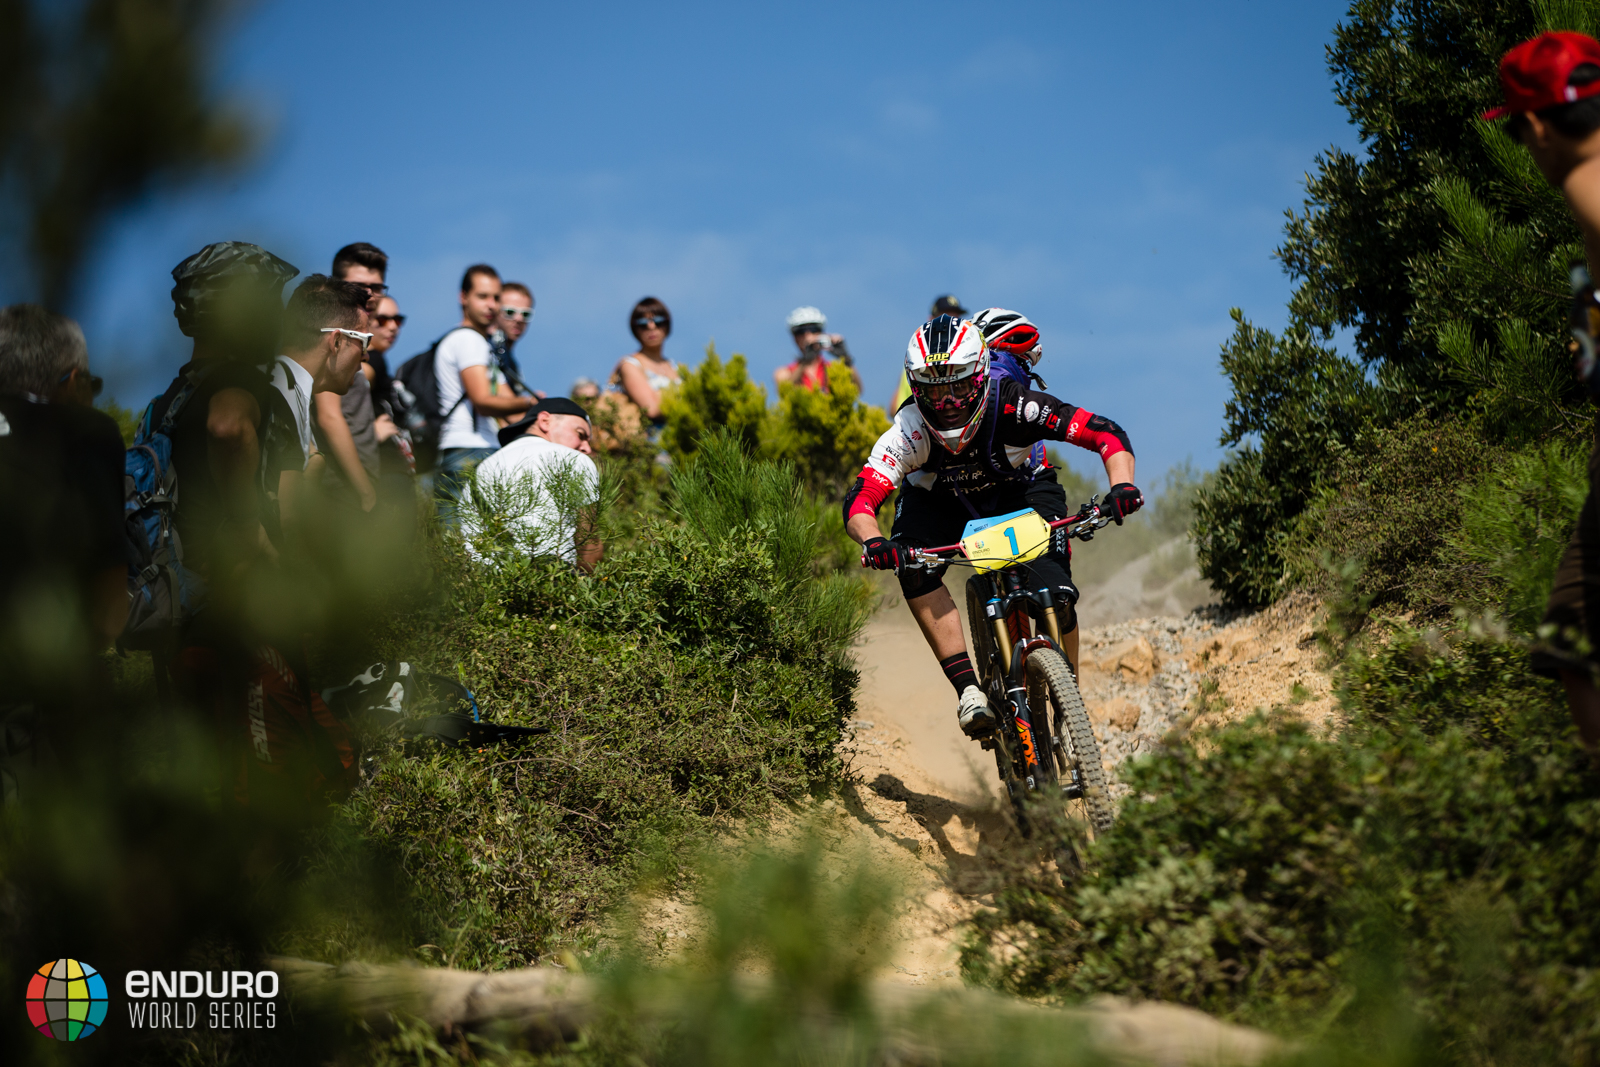 Tracy Moseley on stage four. EWS 7 2014, Finale Ligure. Photo by Matt Wragg